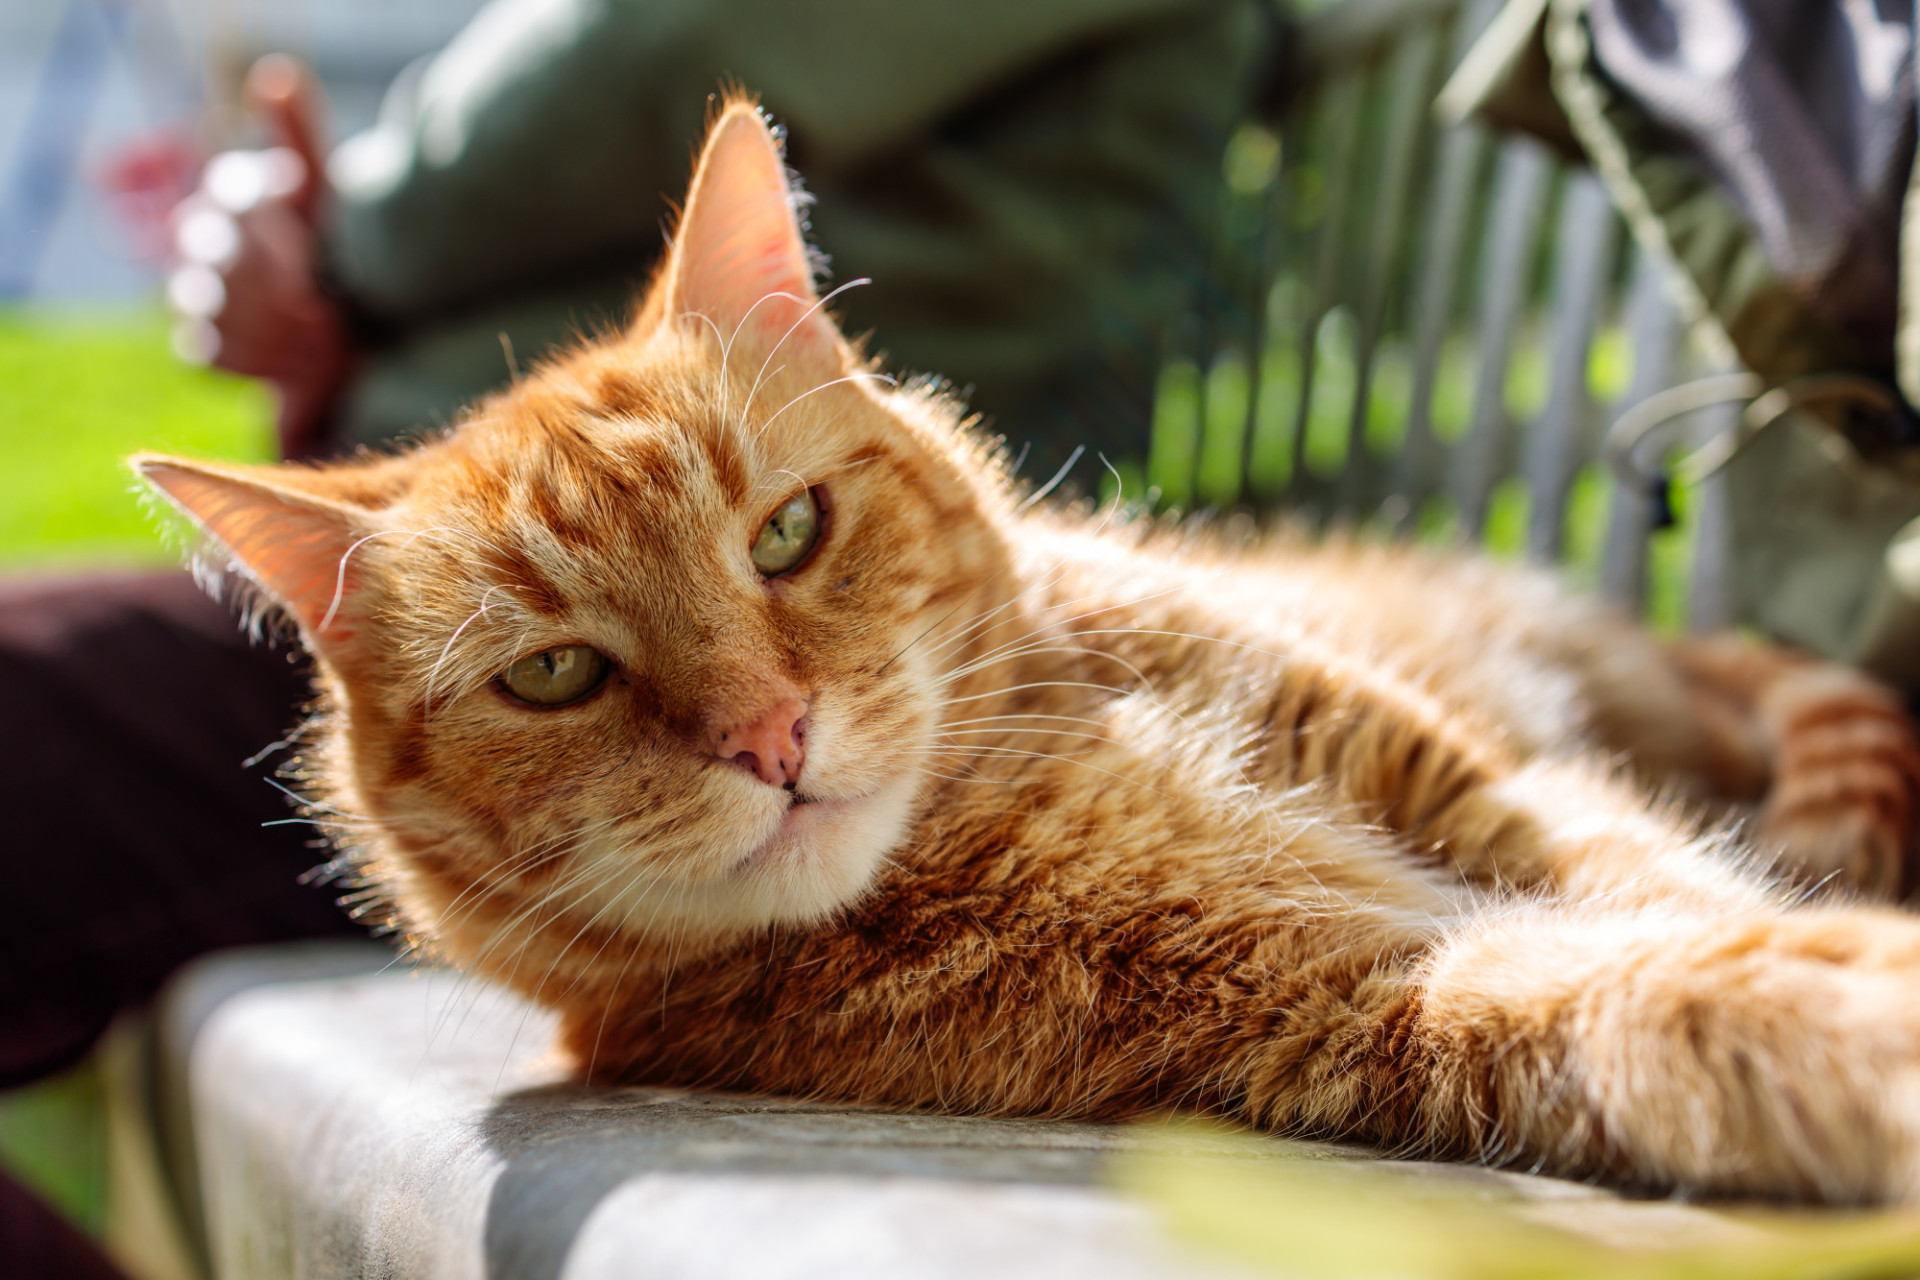 Red cat on a bench in the garden